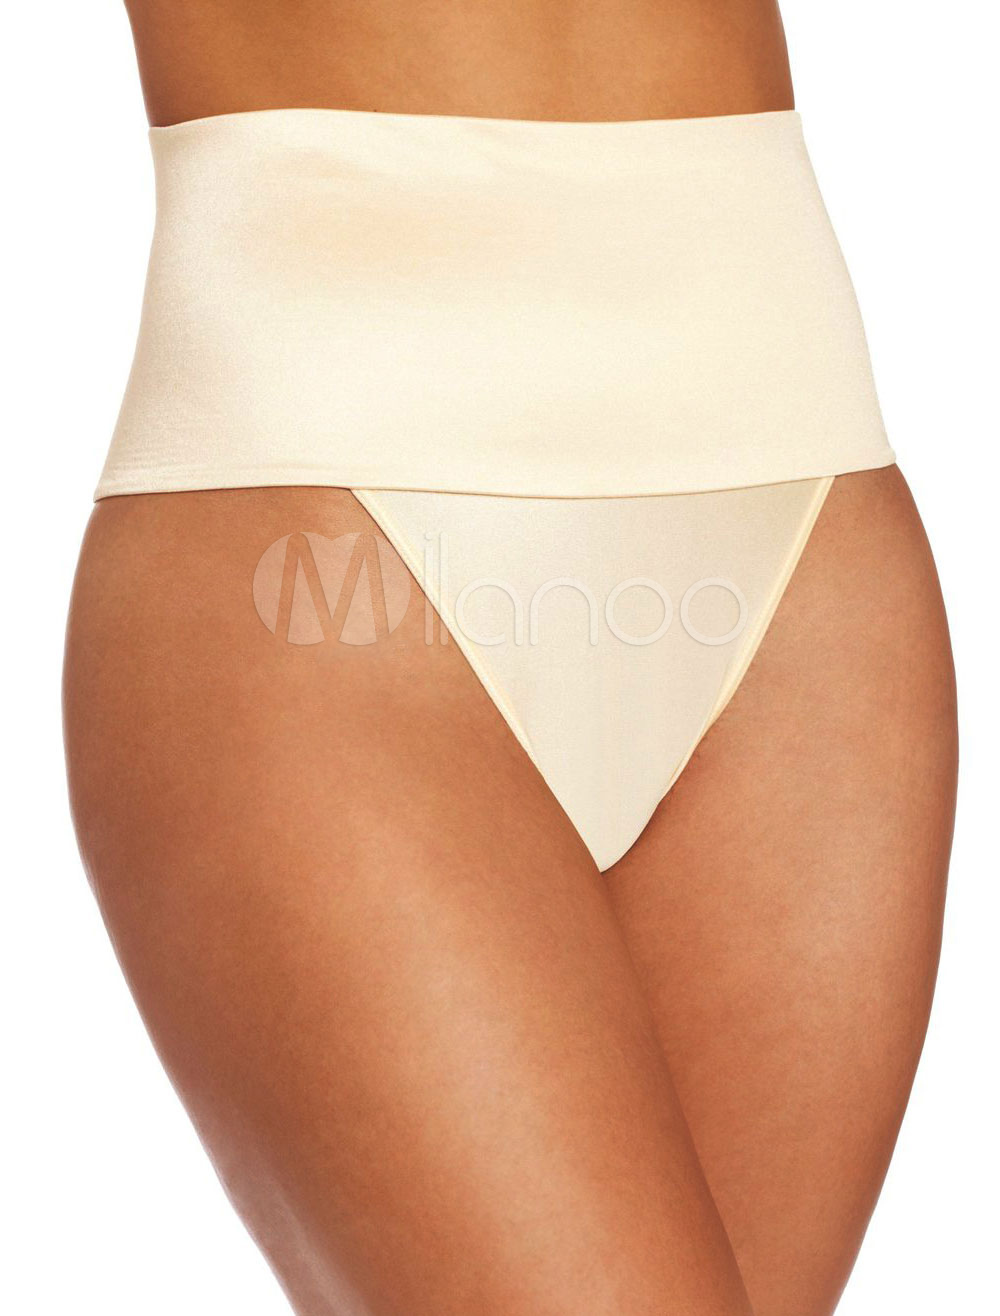 Body Shaper Panty Tummy Control Brief For Women Cheap clothes, free shipping worldwide